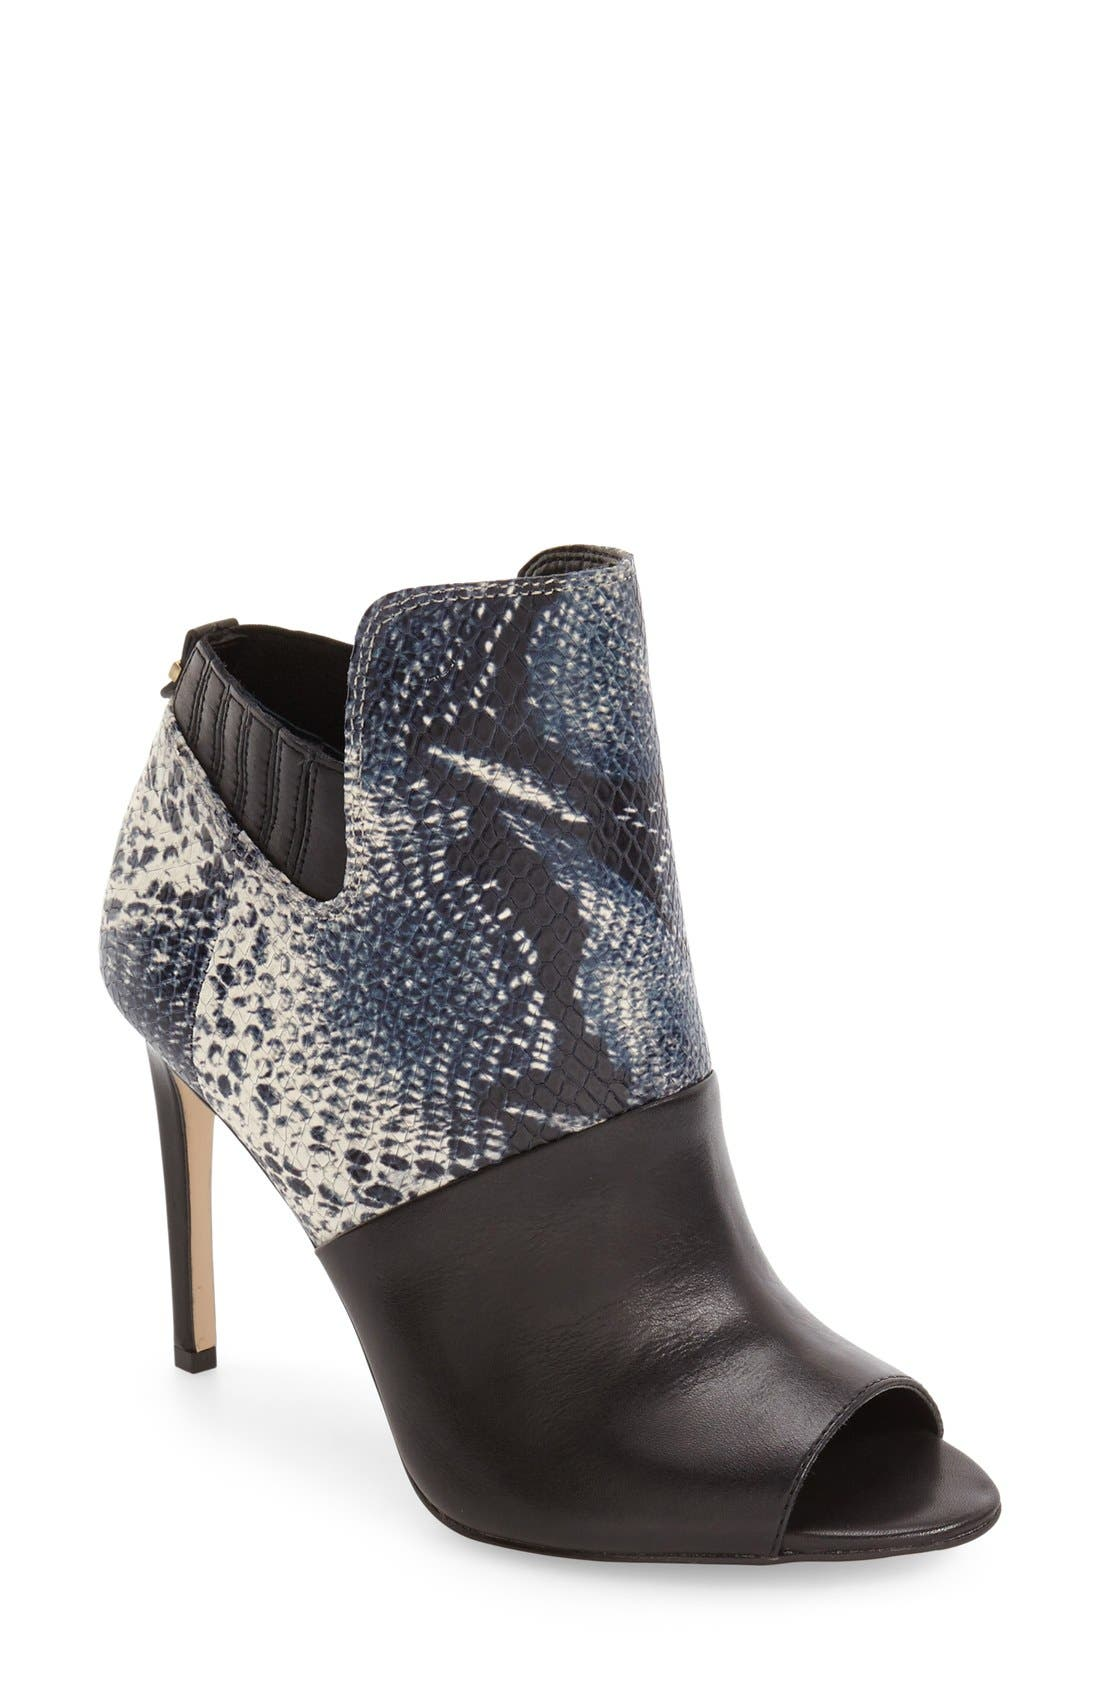 Sarine Peep Toe Bootie,                             Main thumbnail 1, color,